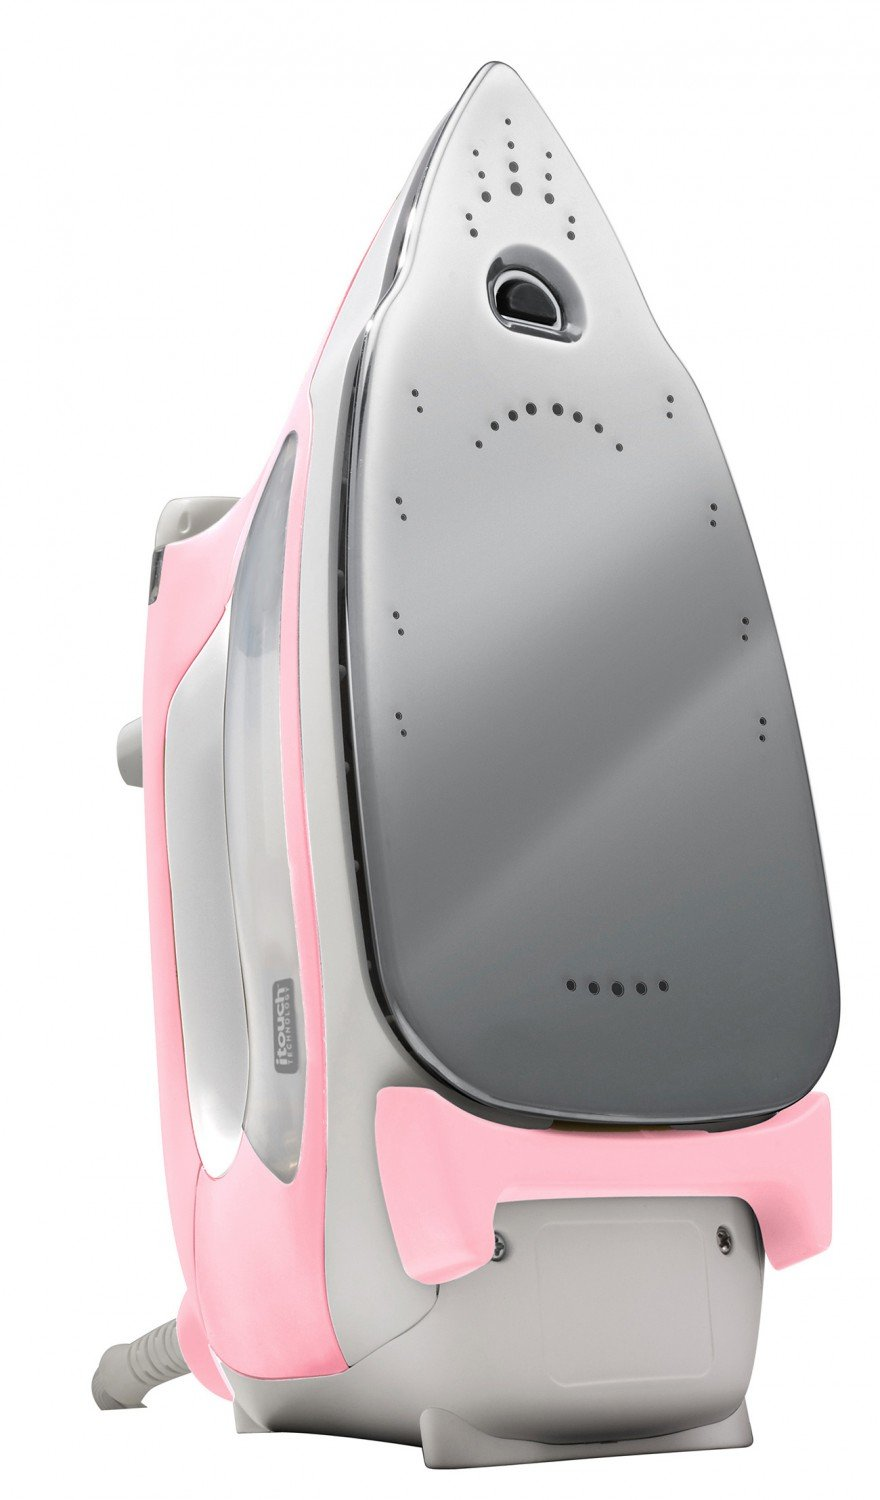 Oliso Pro Zone Smart Iron Pink